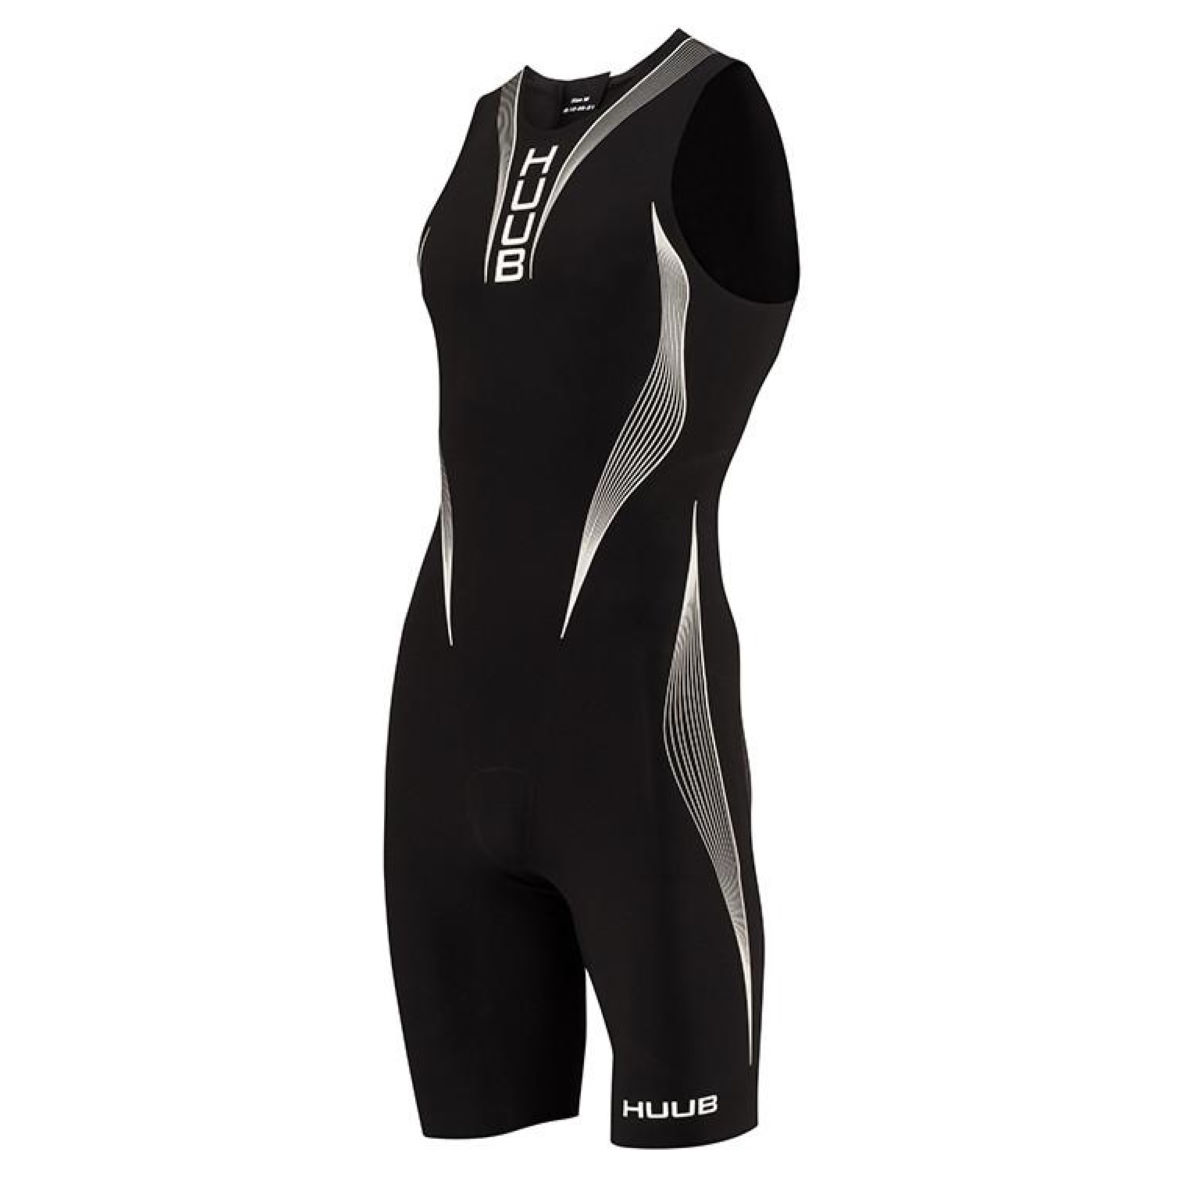 HUUB Albacore Tri Suit - Small Black | Tri Suits